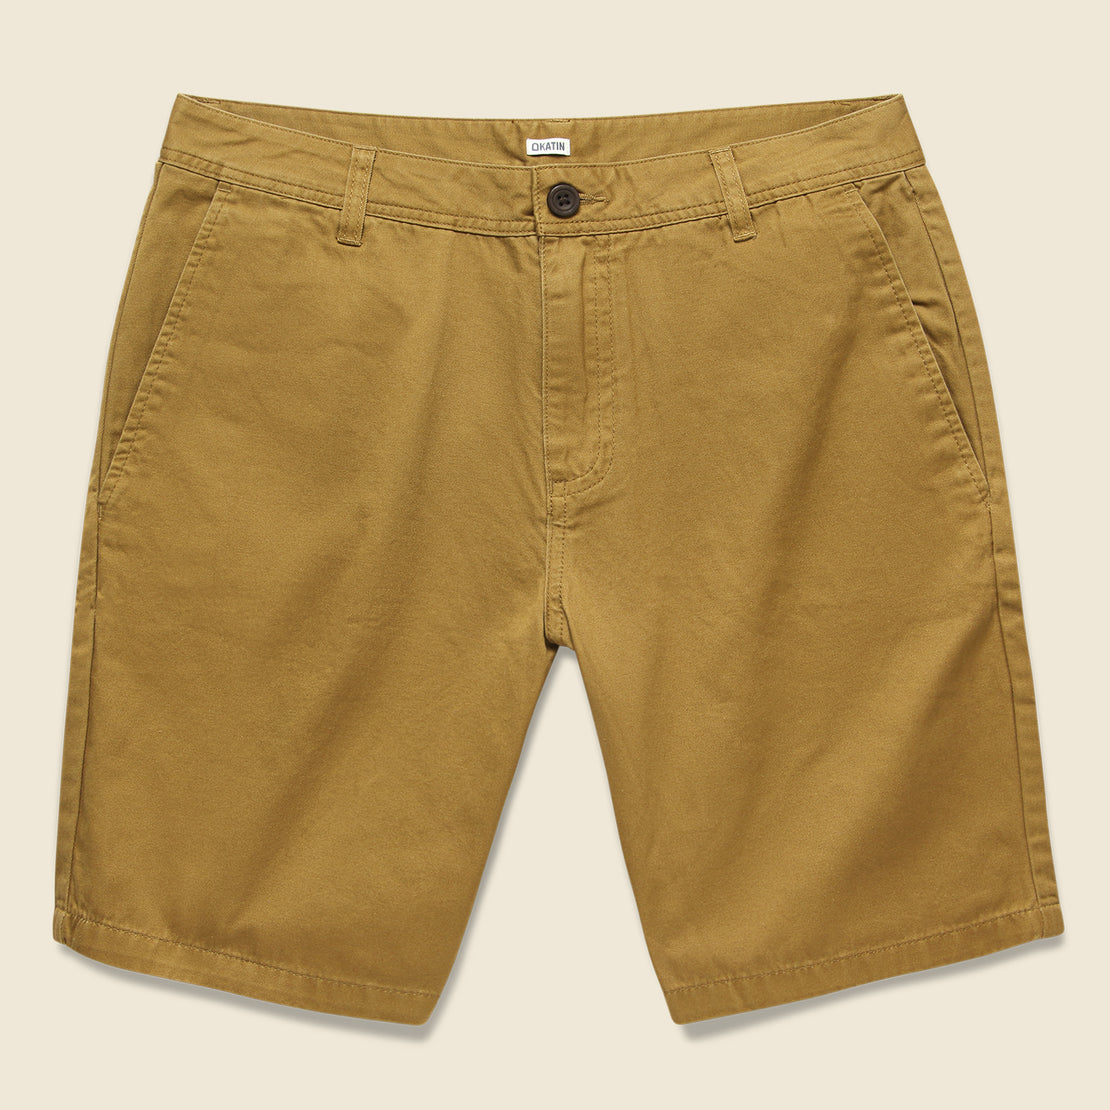 Katin Cove Short - Walnut